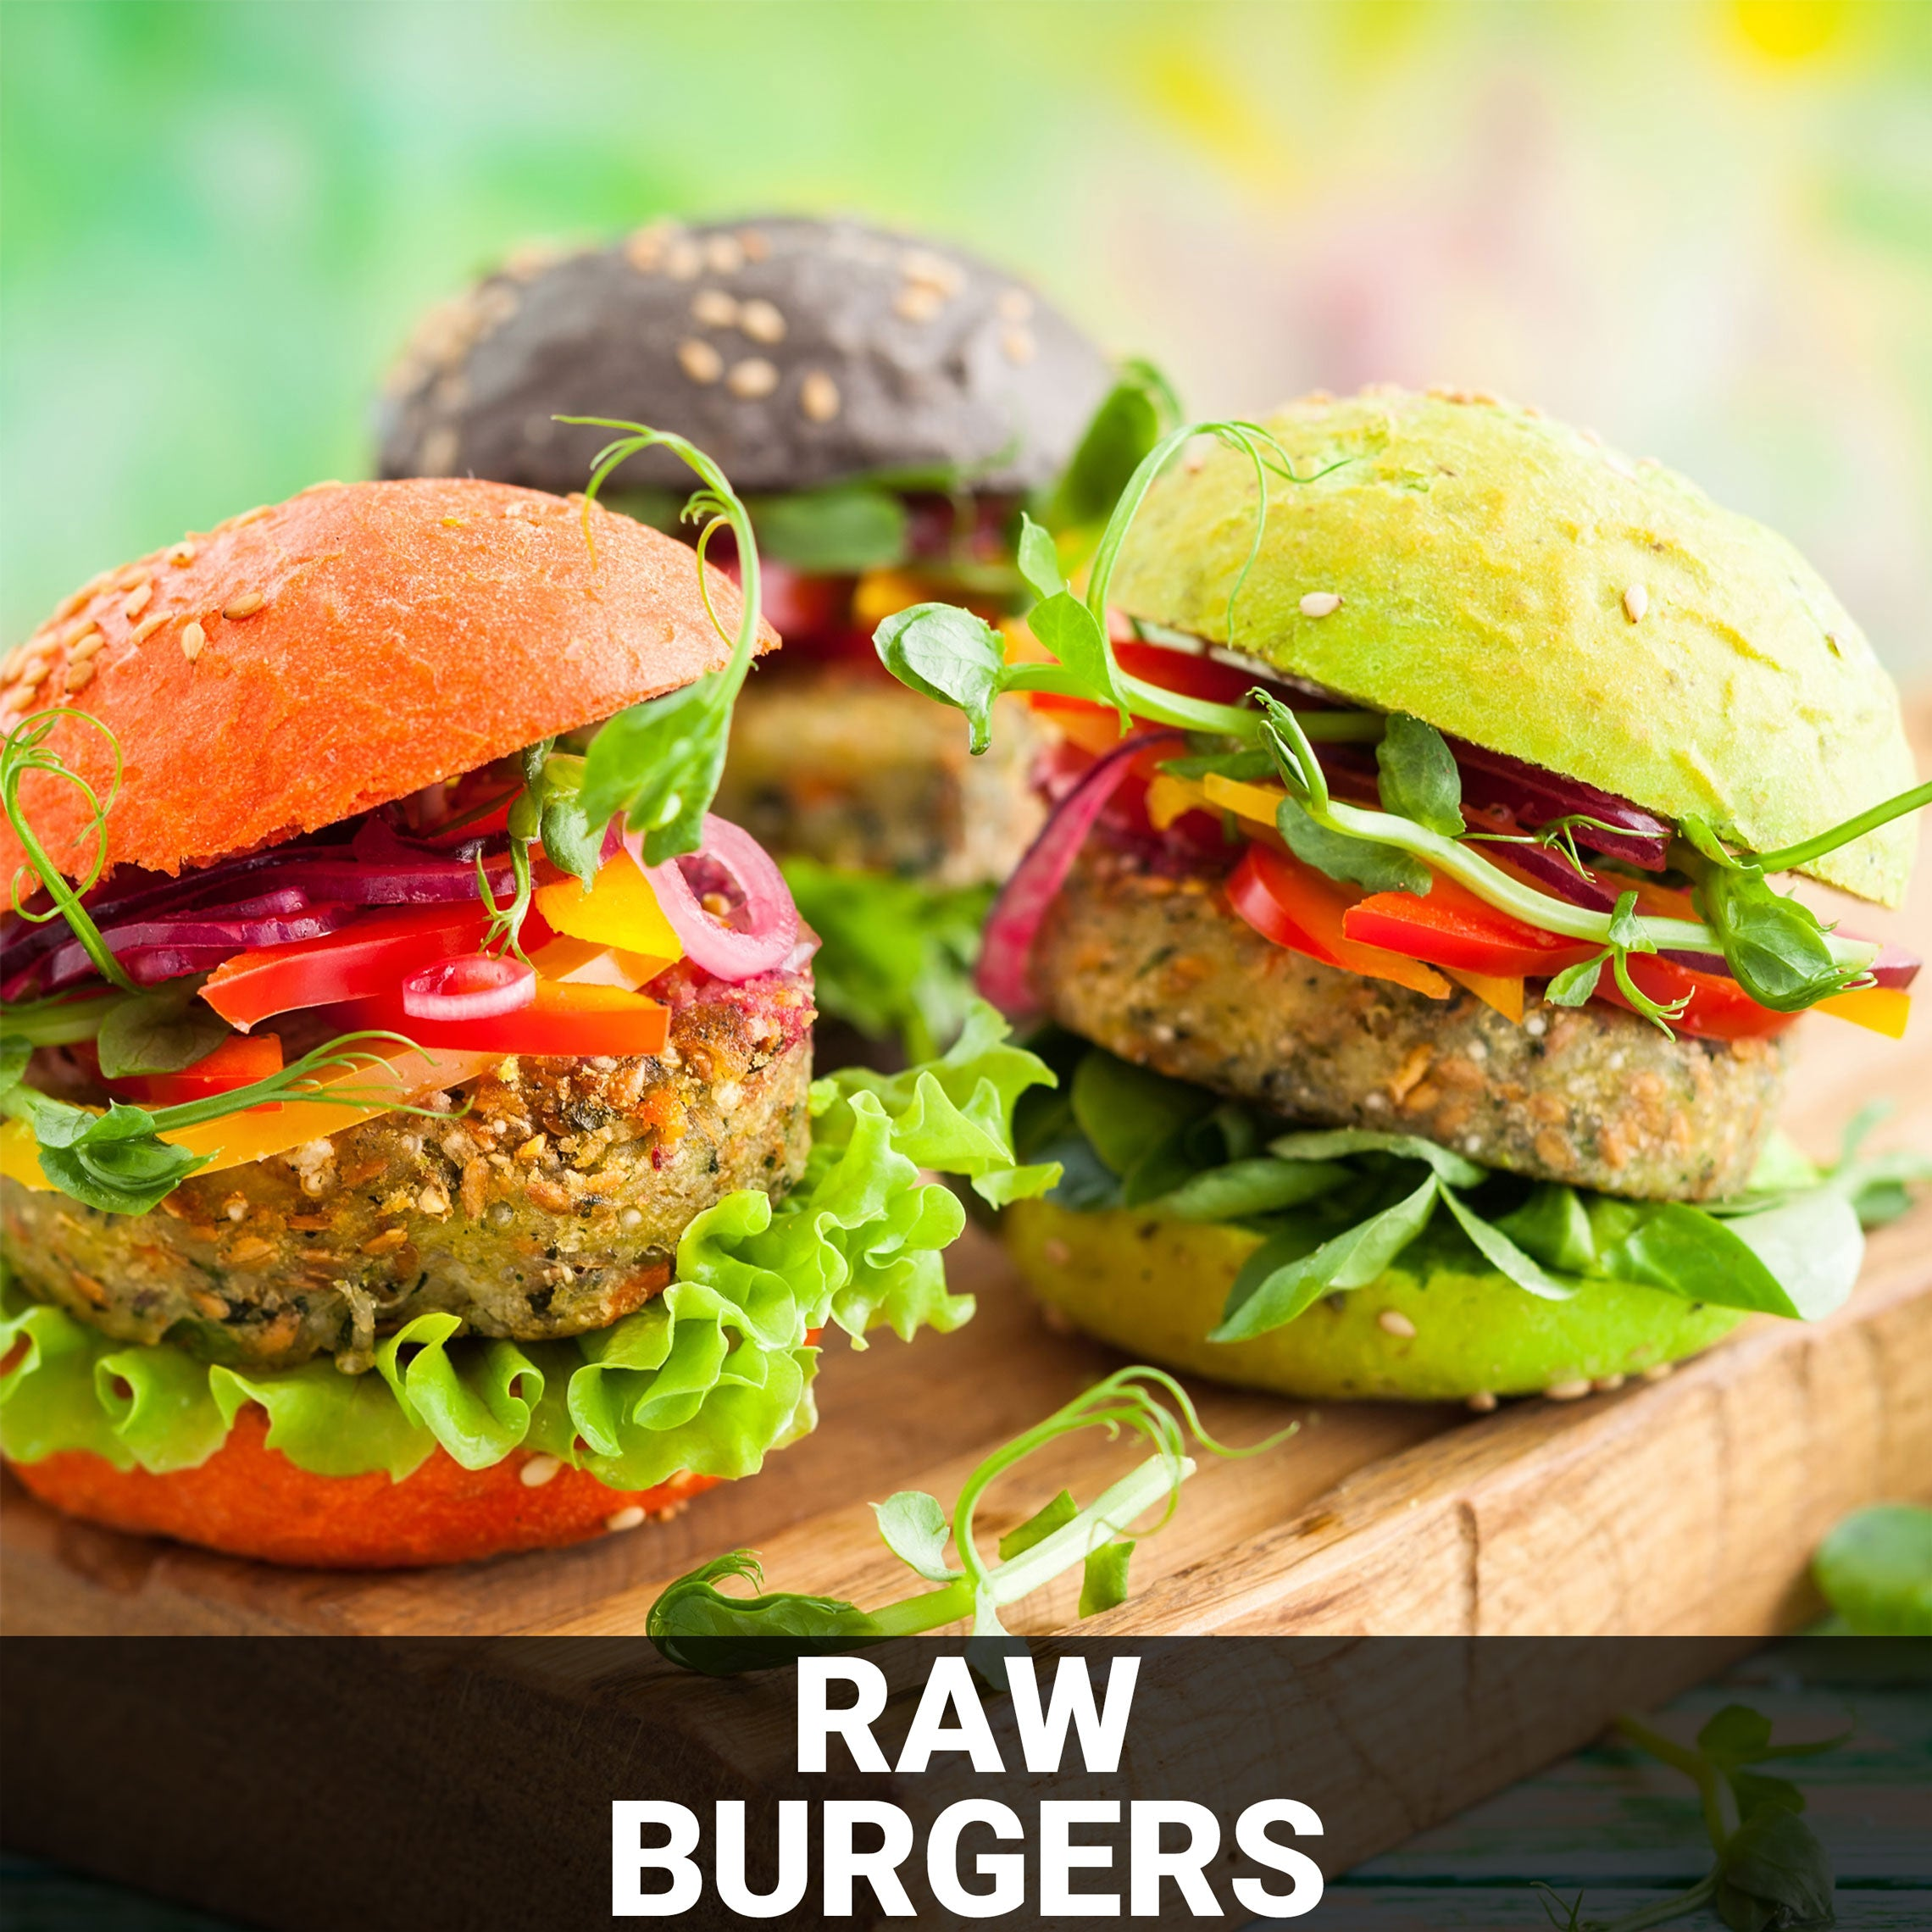 Raw Burgers Recipe - Foods Alive